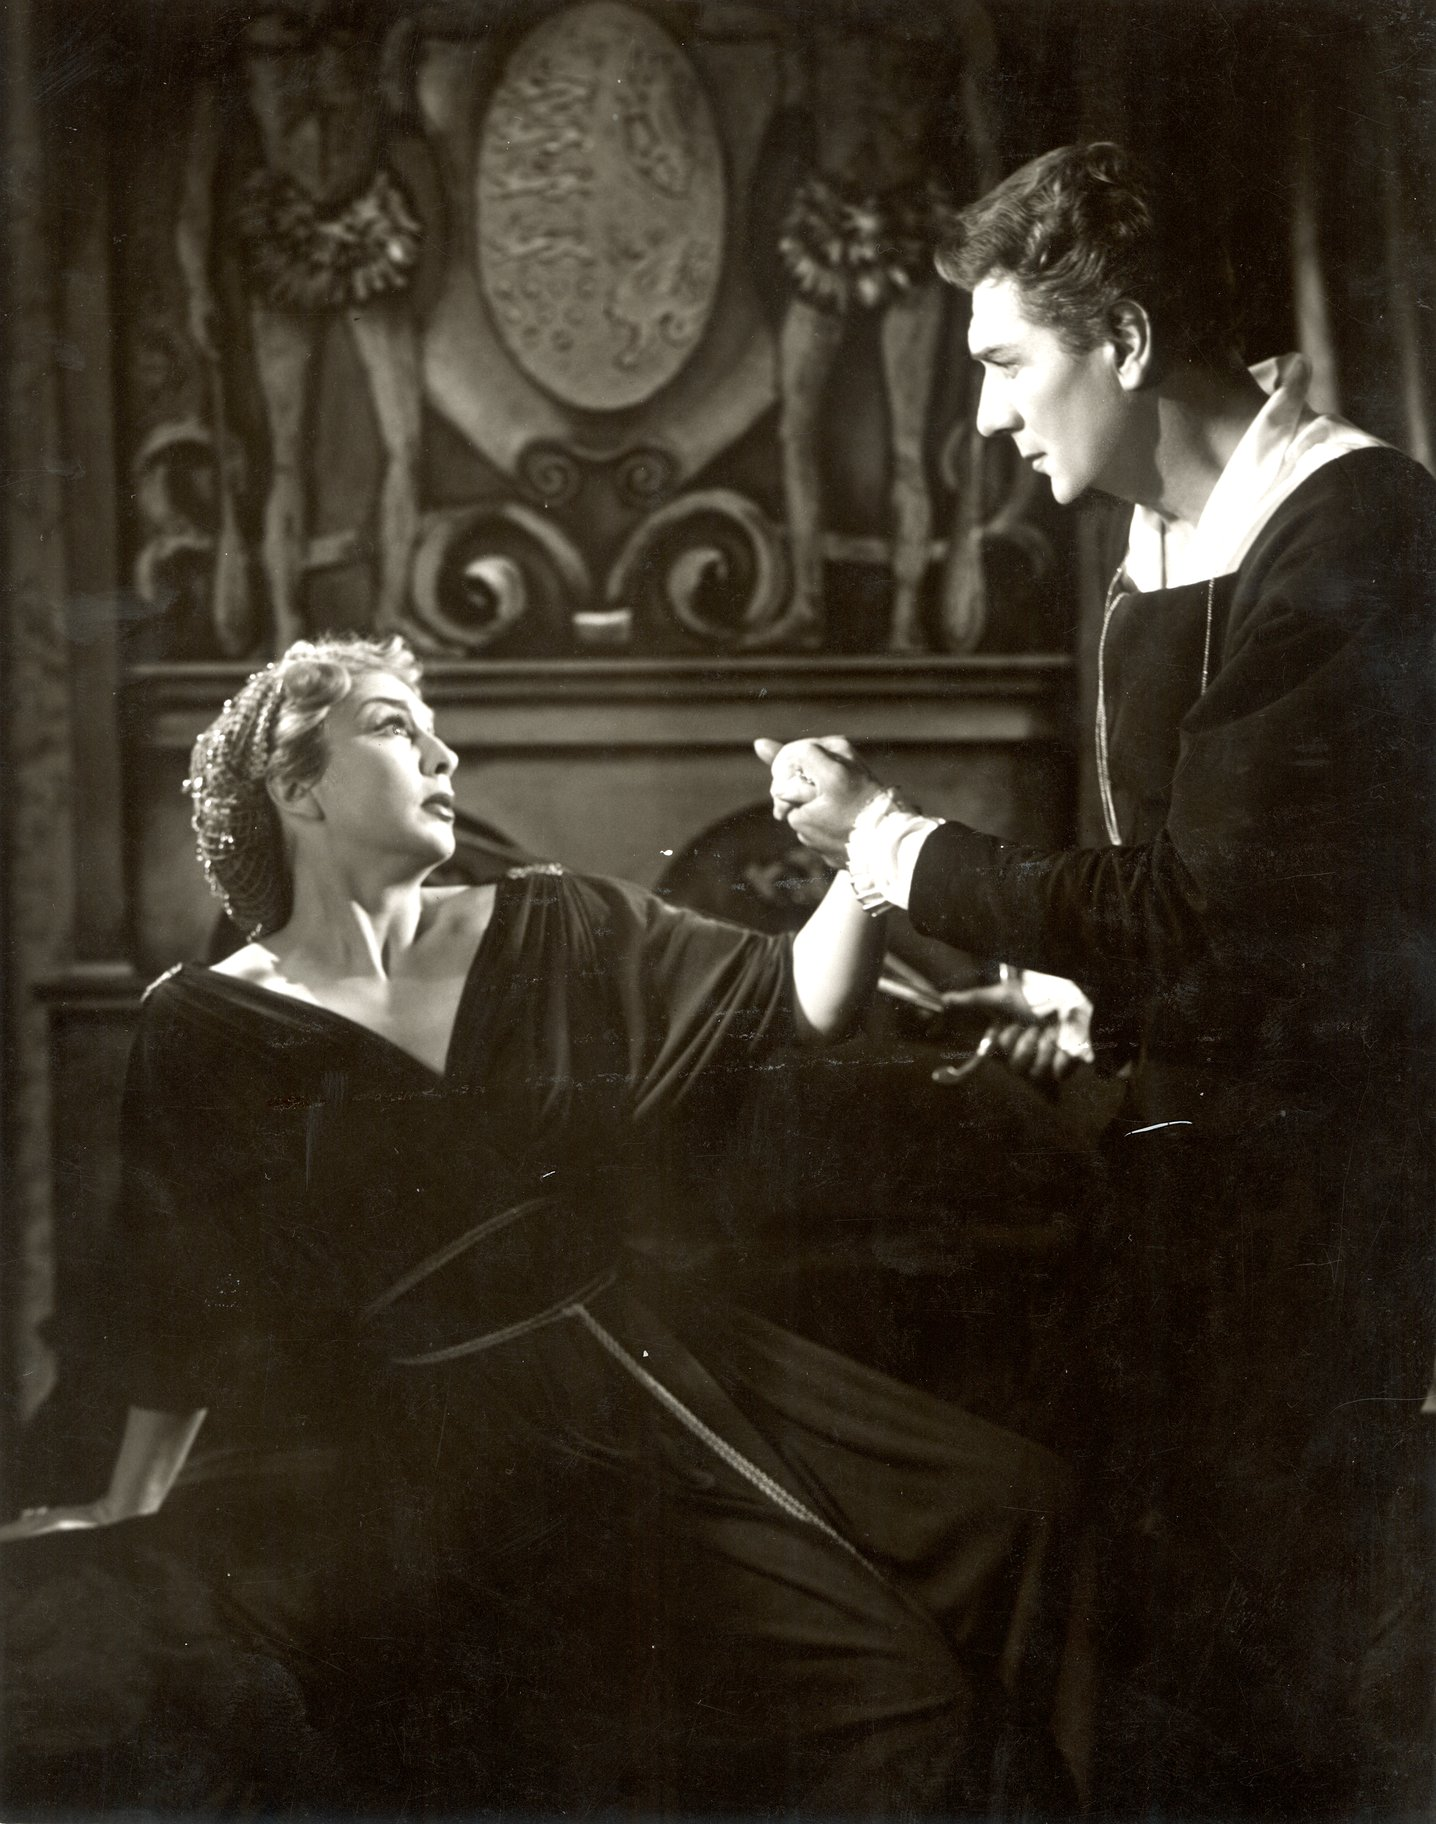 Hamlet and Gertrude in the 1958 production of Hamlet.